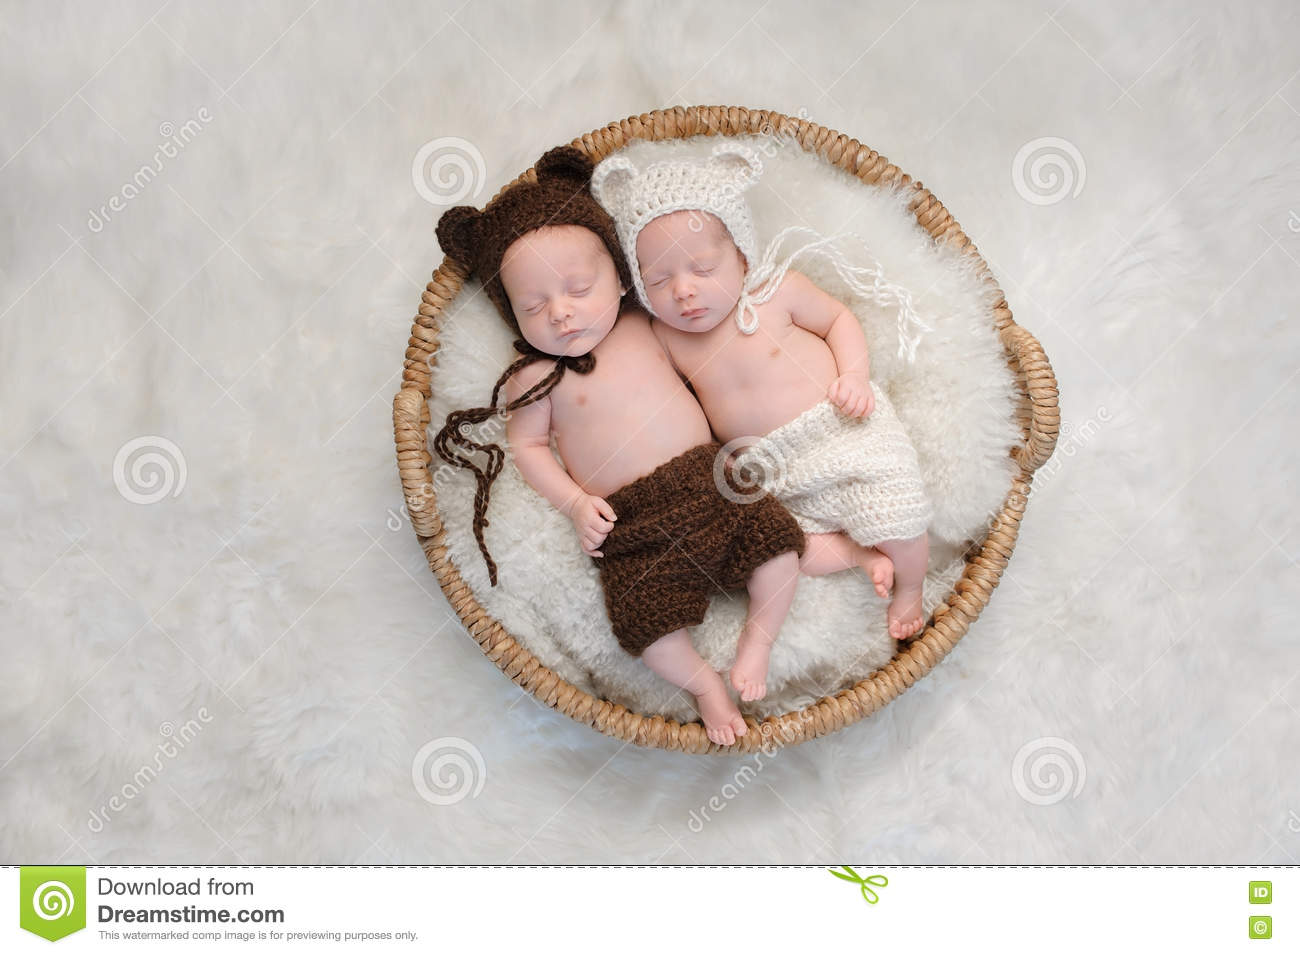 Fraternal Twin Baby Brother and Sister in Bear Hats